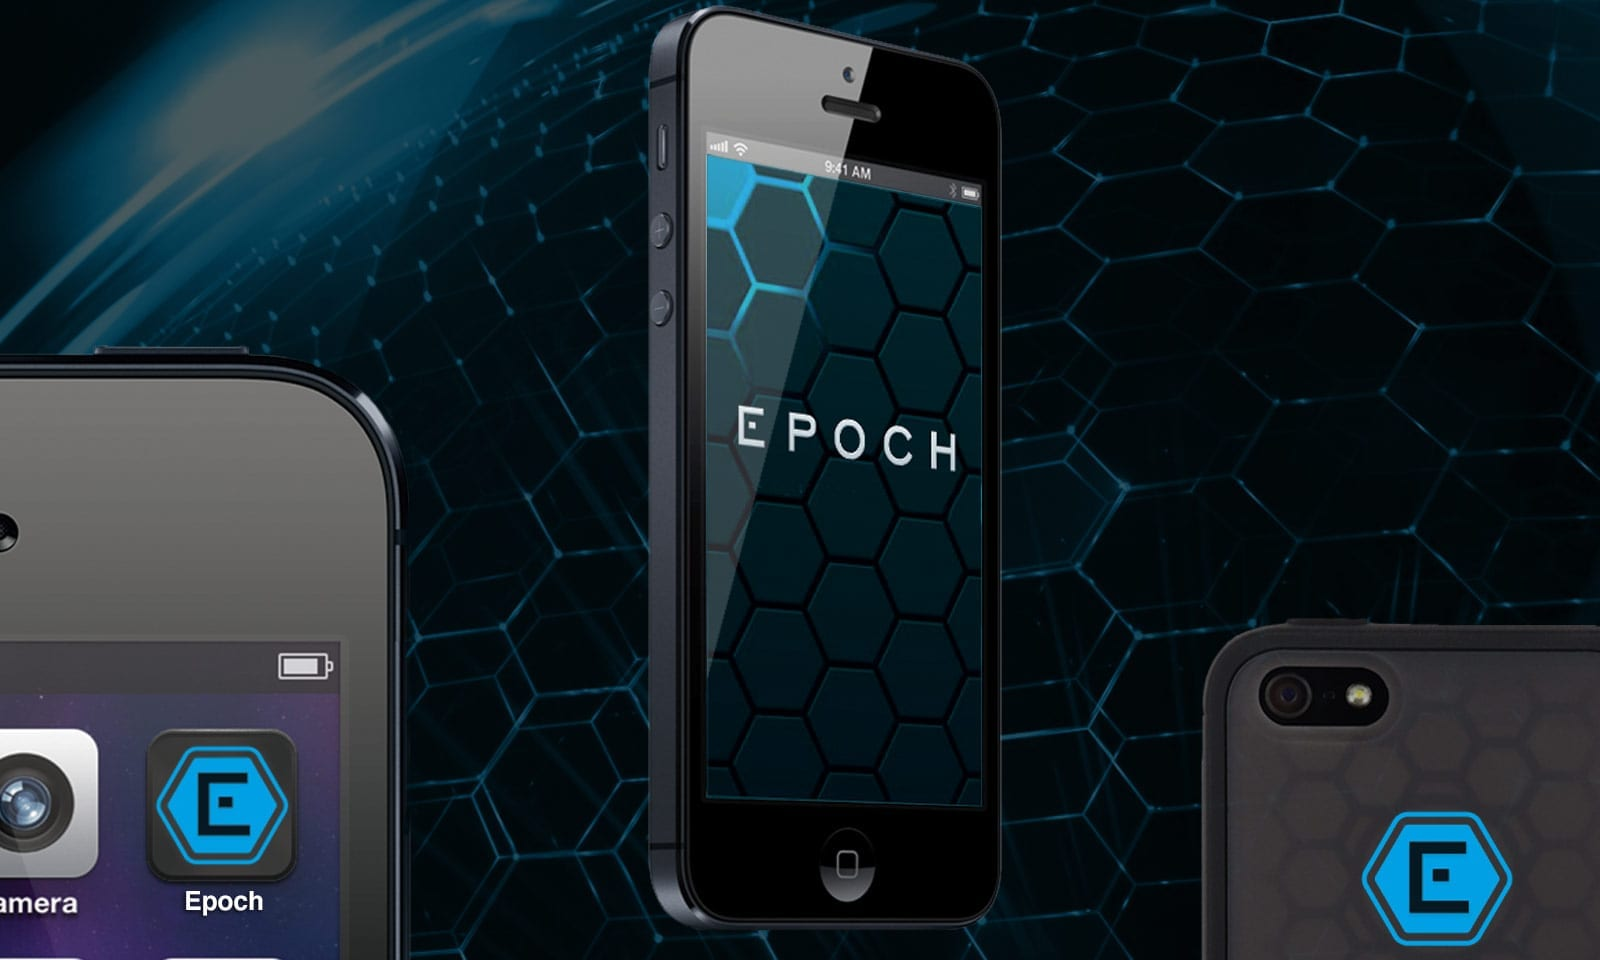 Epoch interactive trading app for EPOCH the socially responsible trading network.